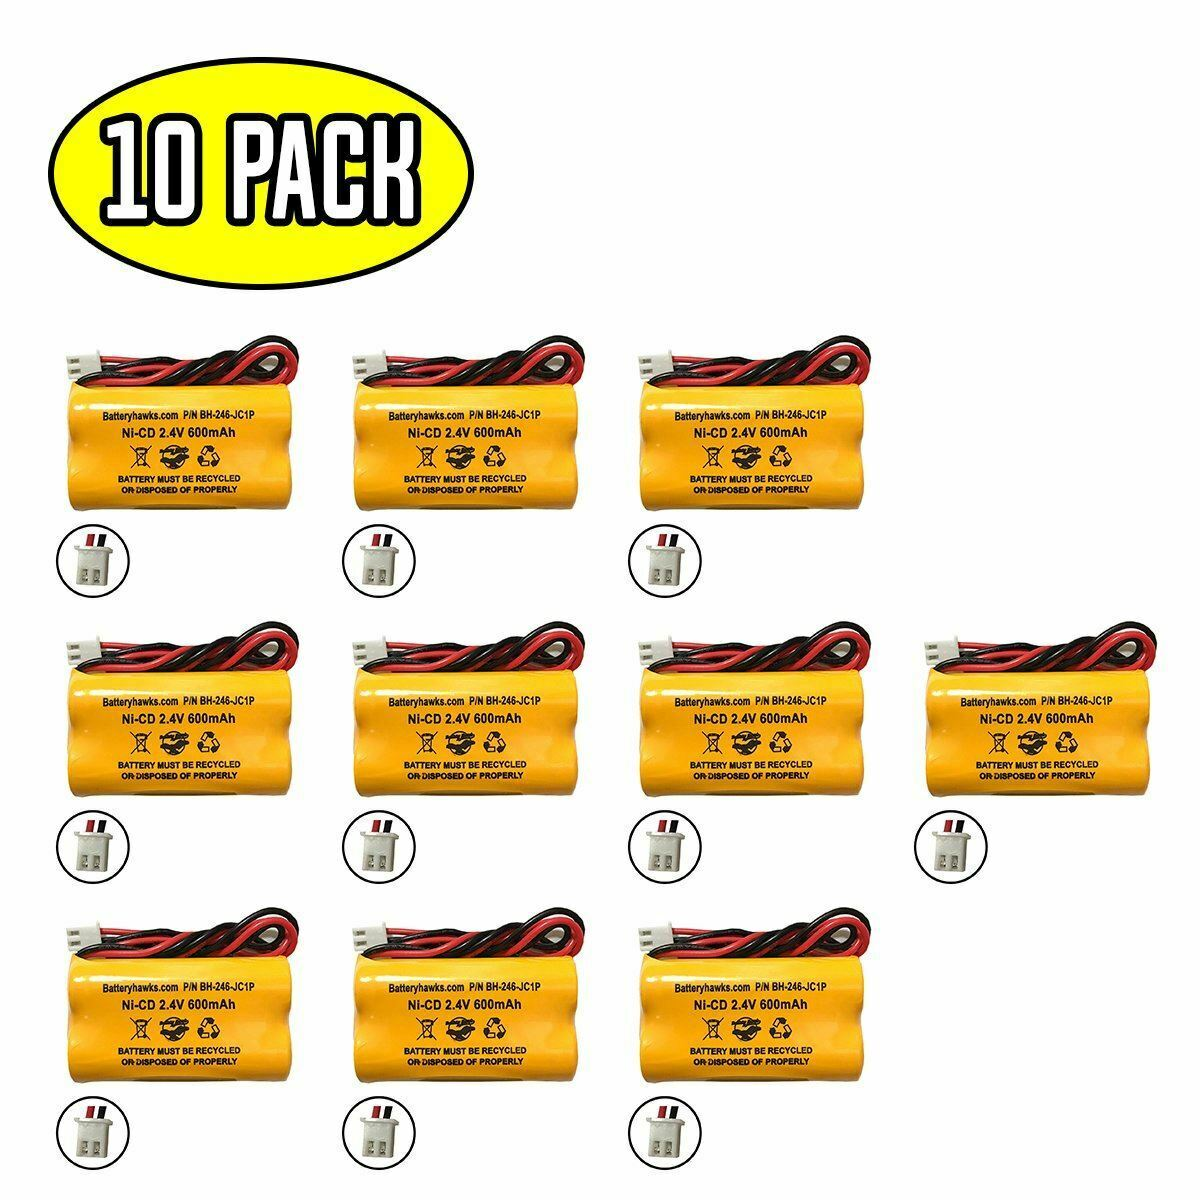 (10 pack) 2.4v 600mAh Ni-CD Battery Pack Replacement for Emergency / Exit Light